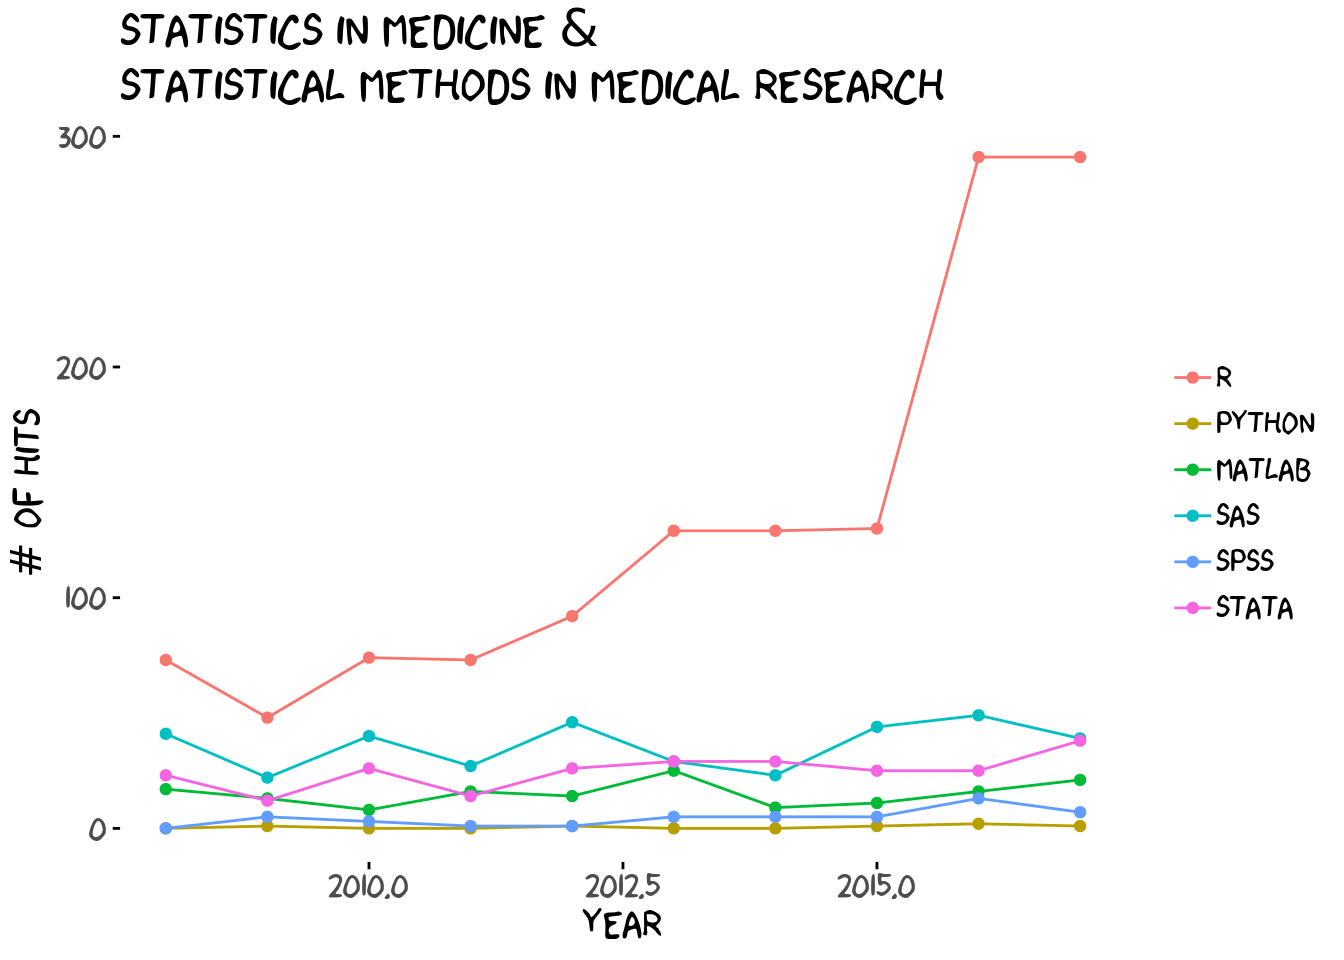 Scholarly articles in Statistics in Medicine and Statistical Methods in Medical Research.